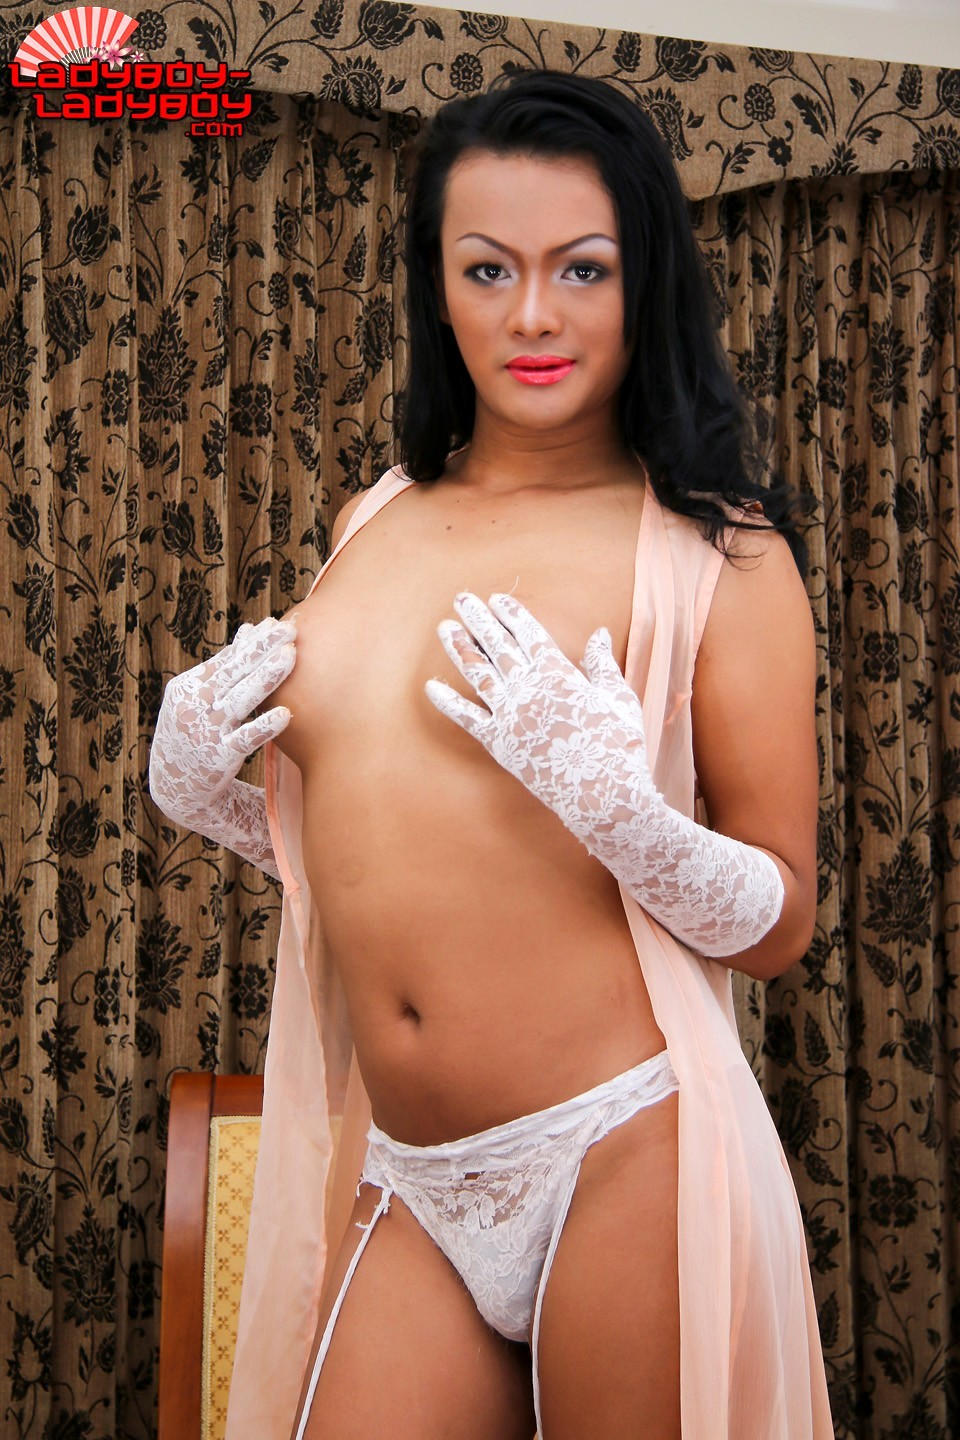 Tong Is A Provocative Girl With A Suggestive Curvy Body, A Cute Thick Ass,